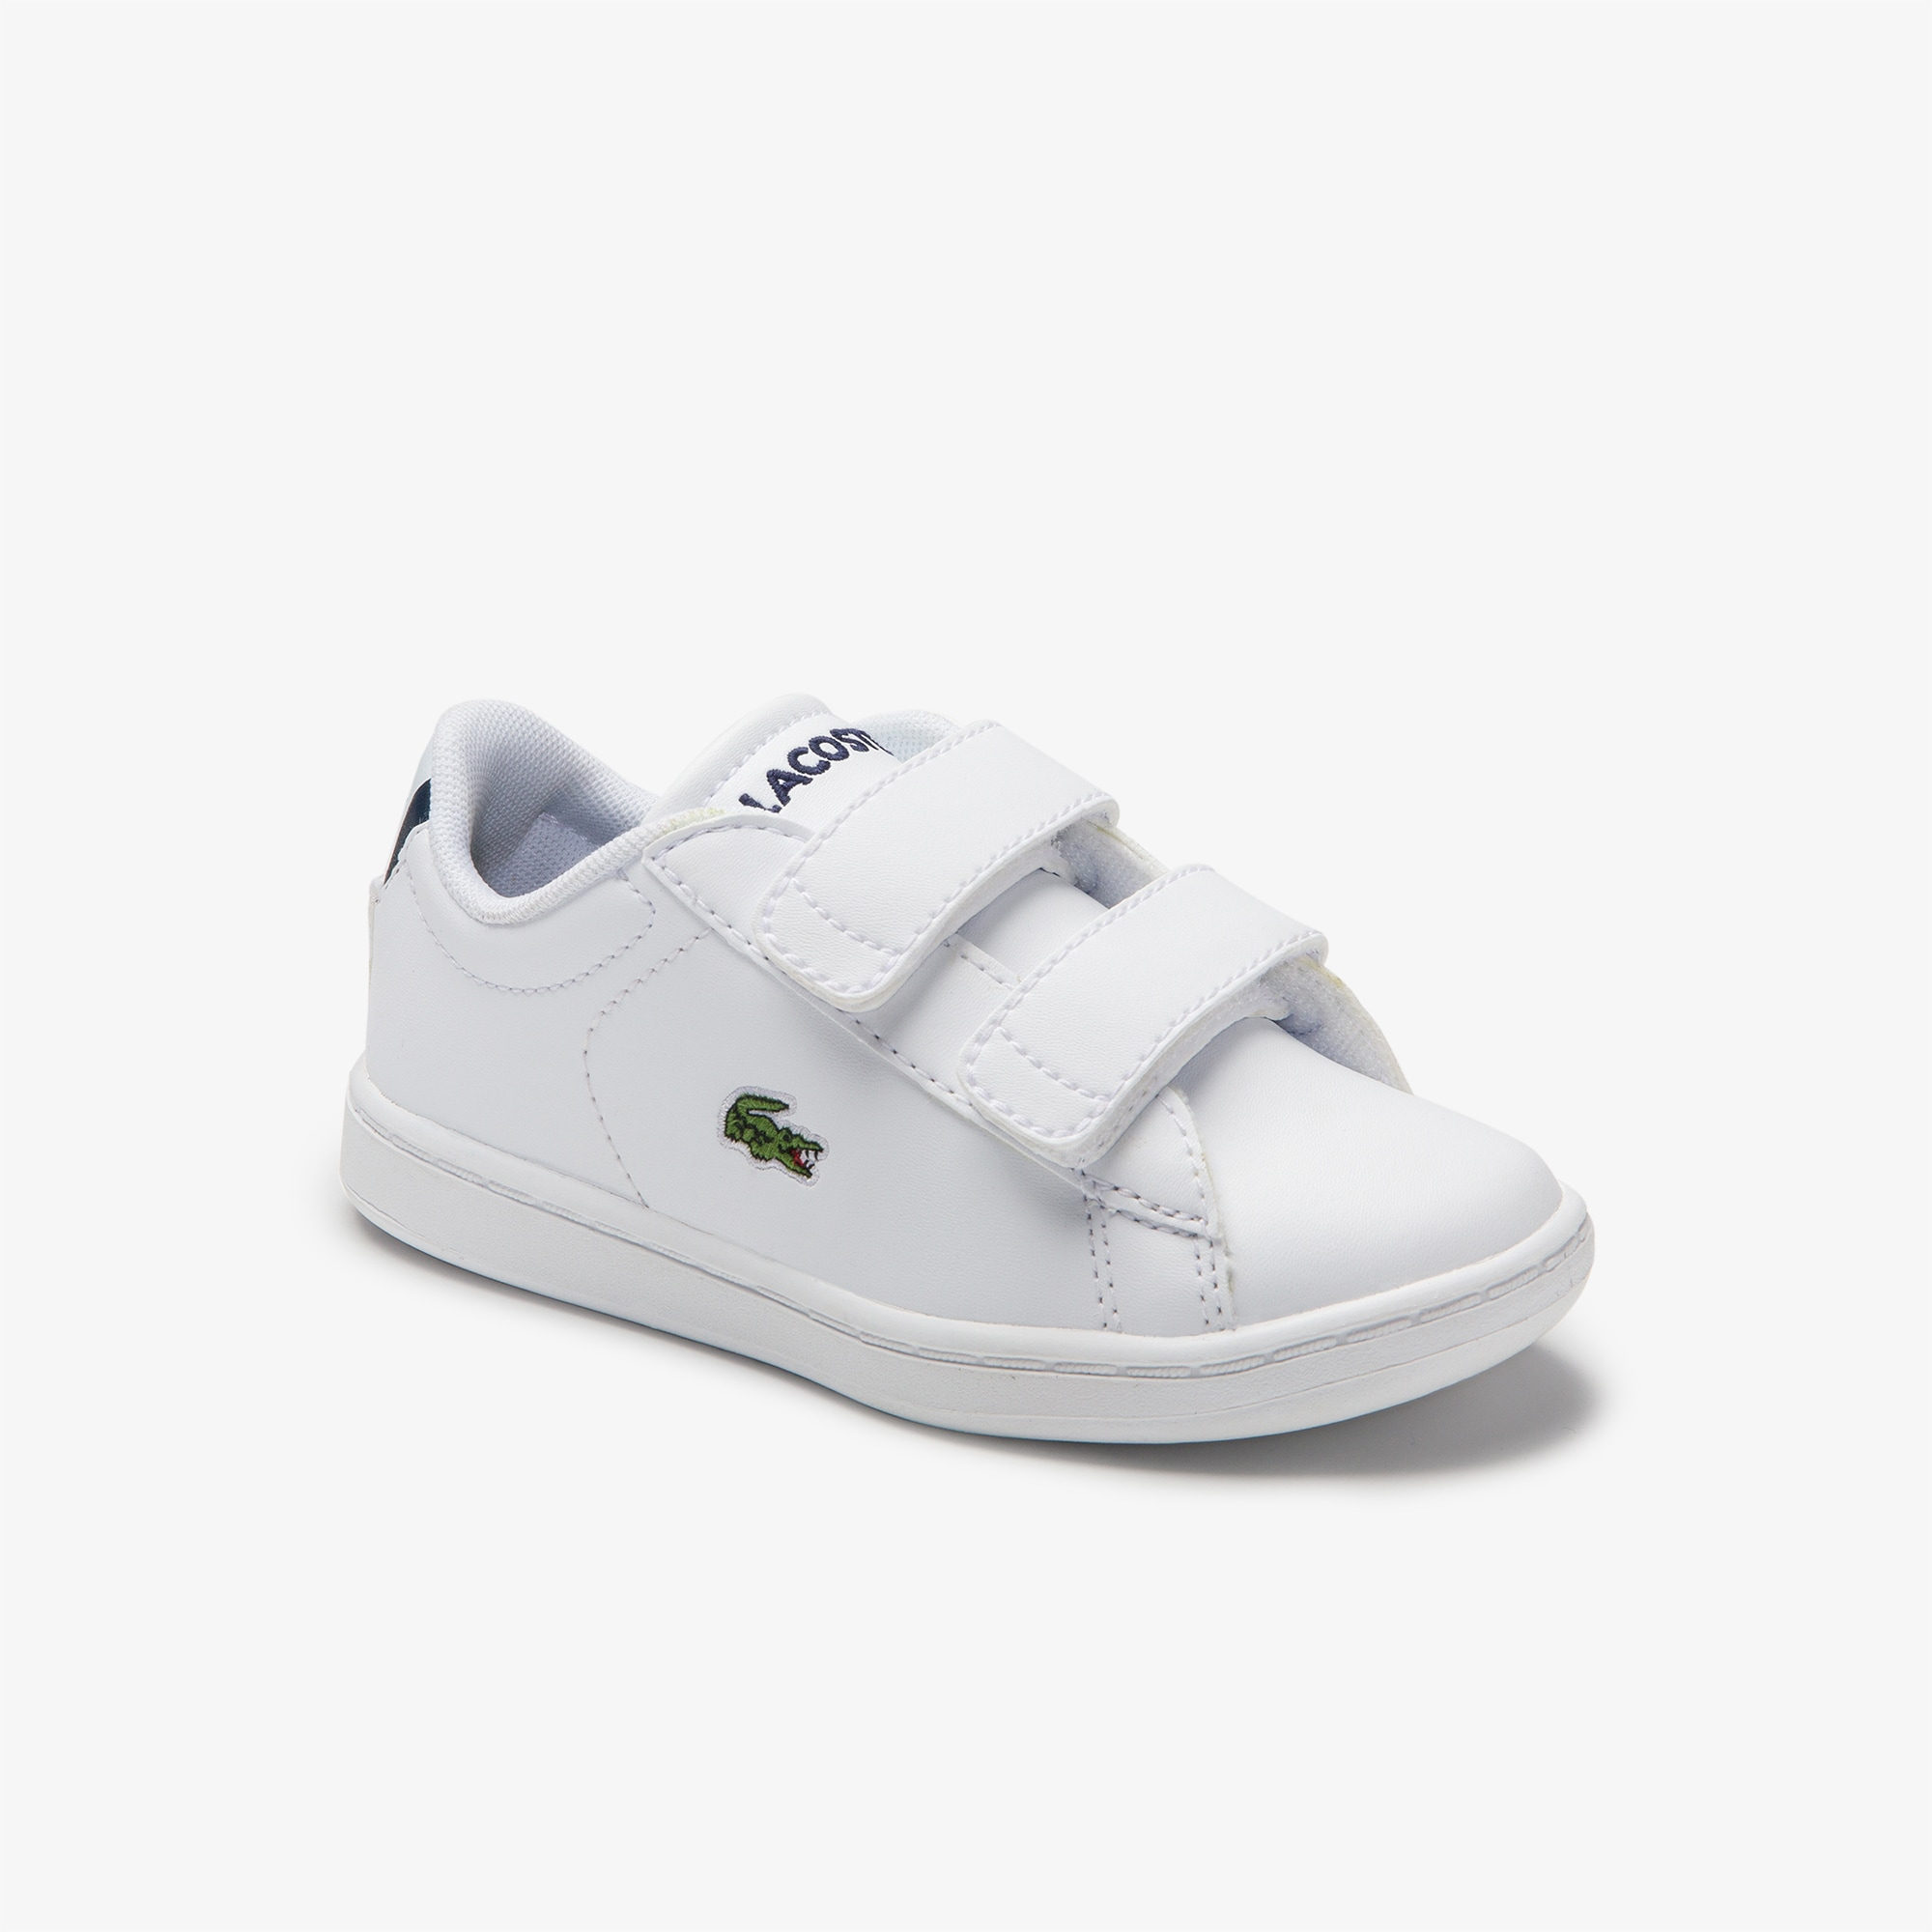 lacoste infant trainers sale - 63% OFF